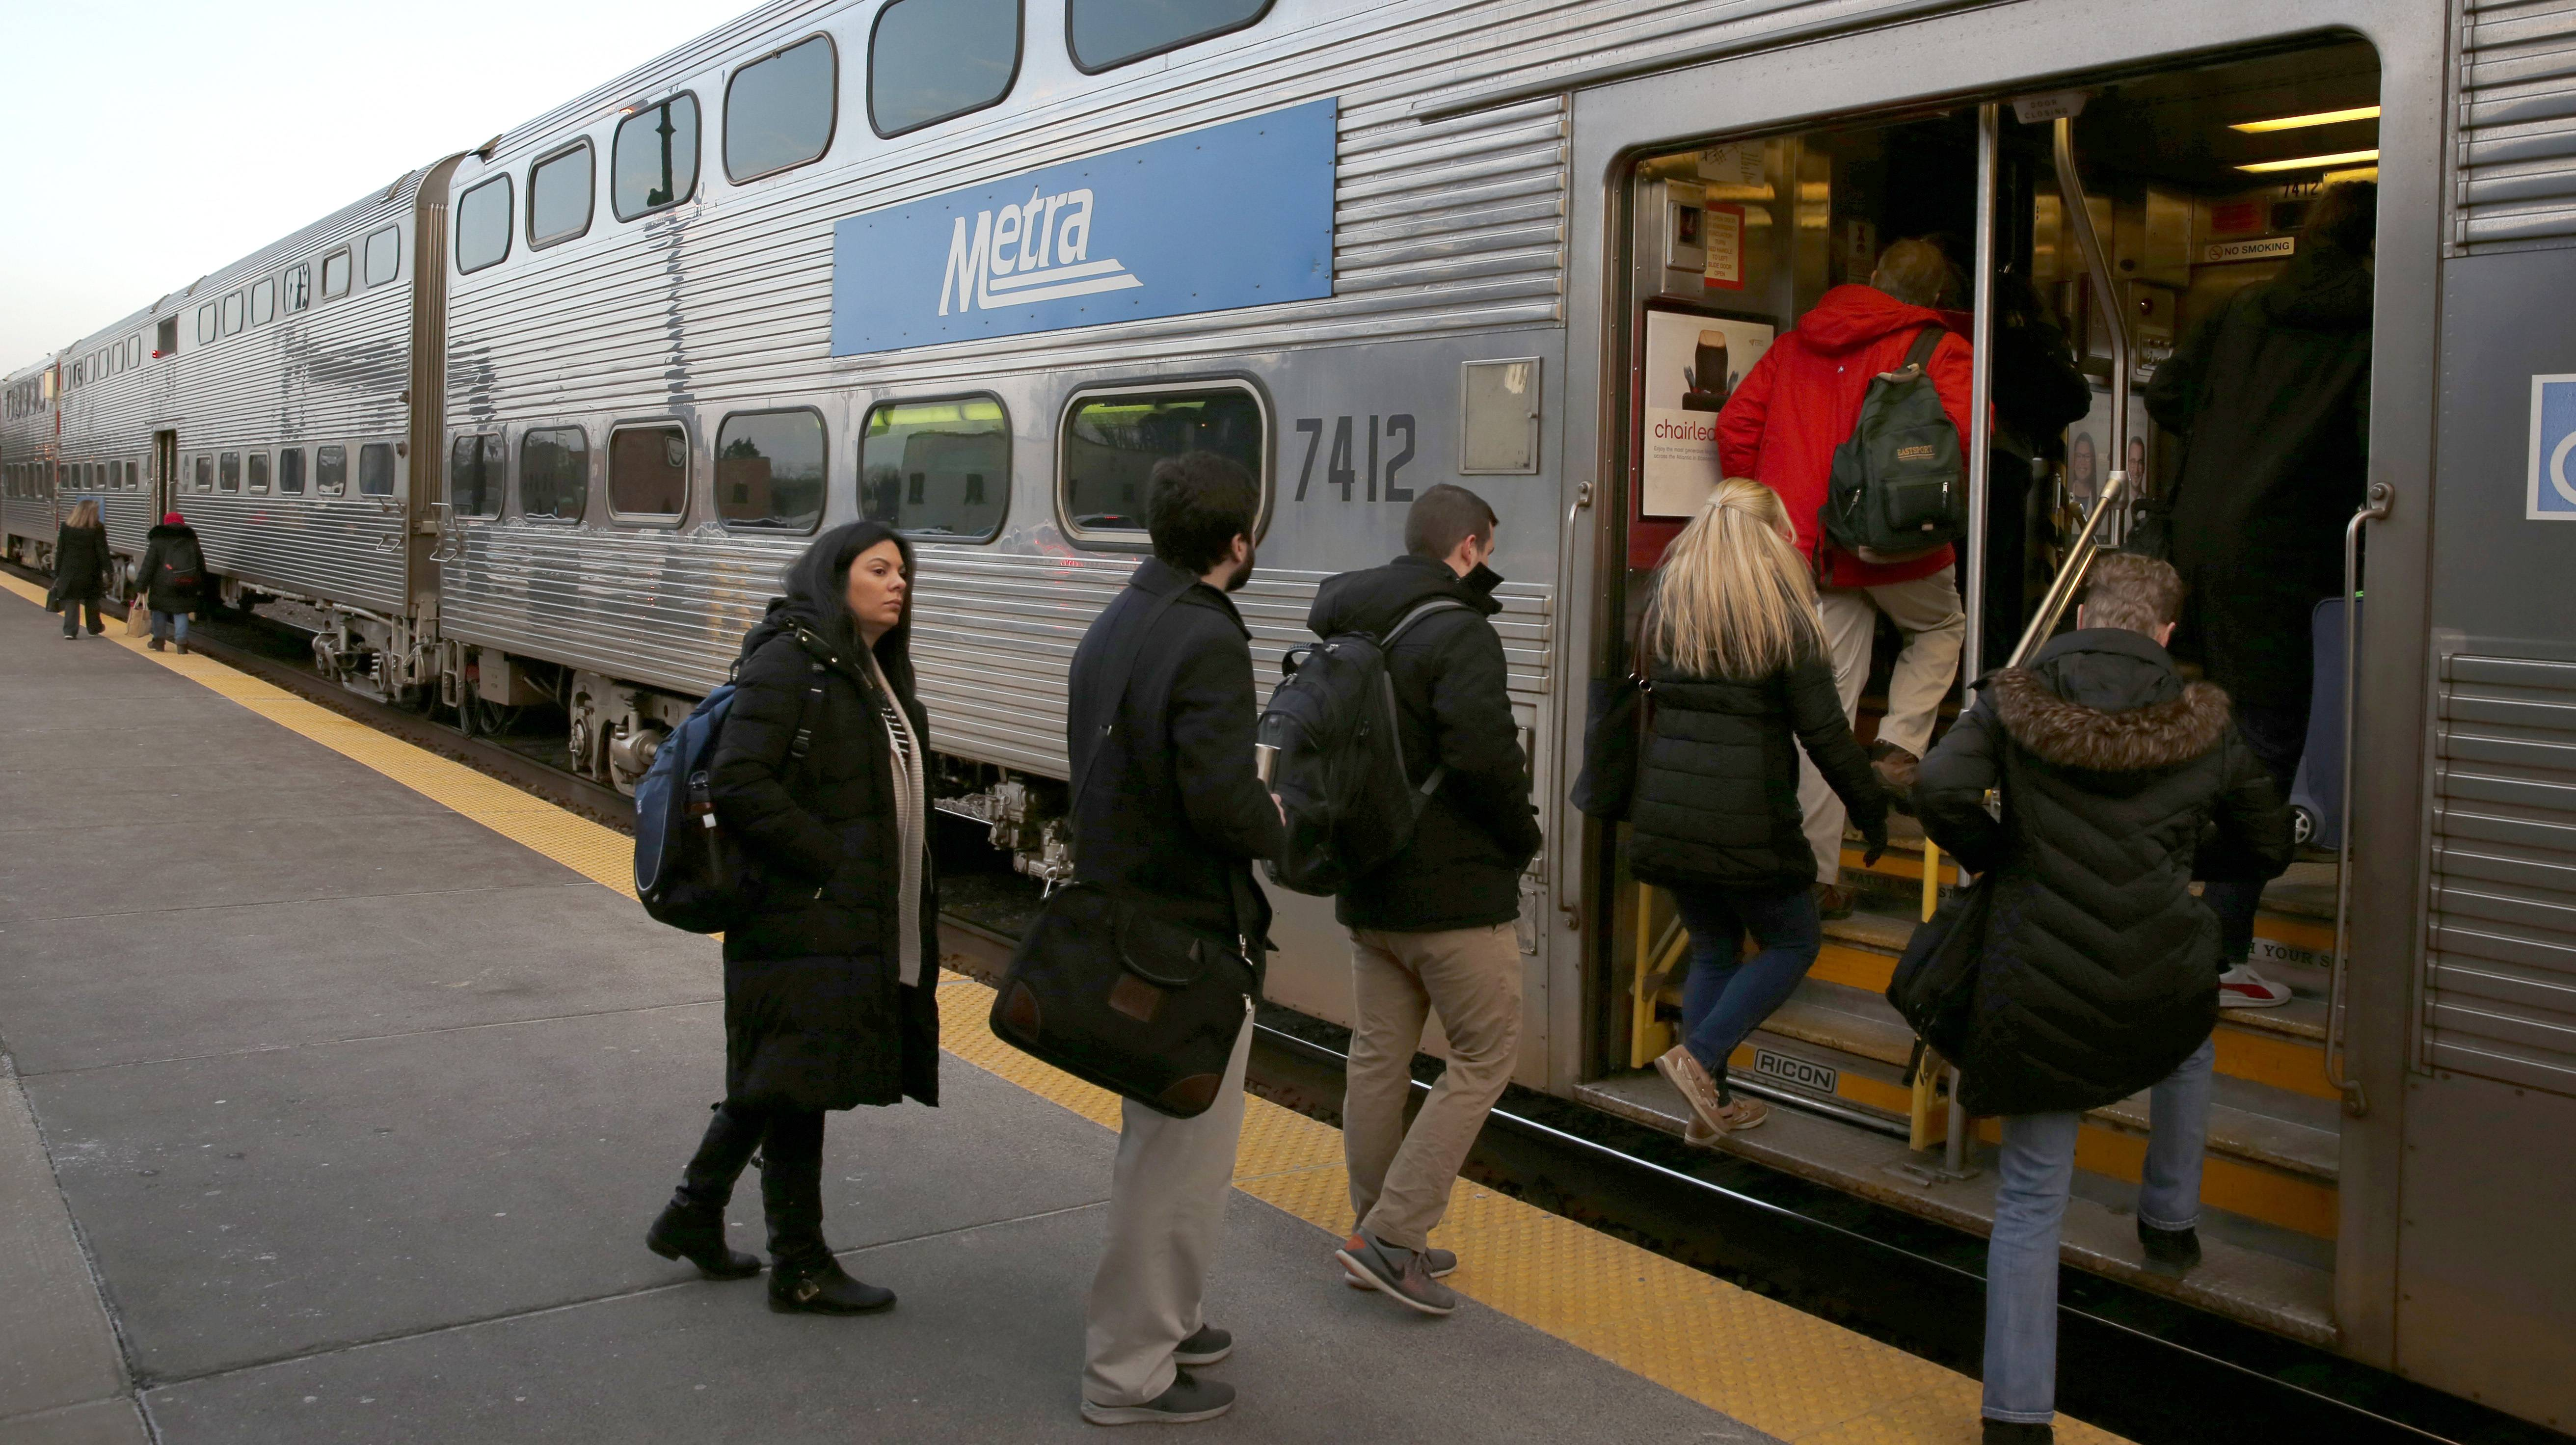 'Crazy.' 'Ridiculous.' Metra riders not happy with another fare hike